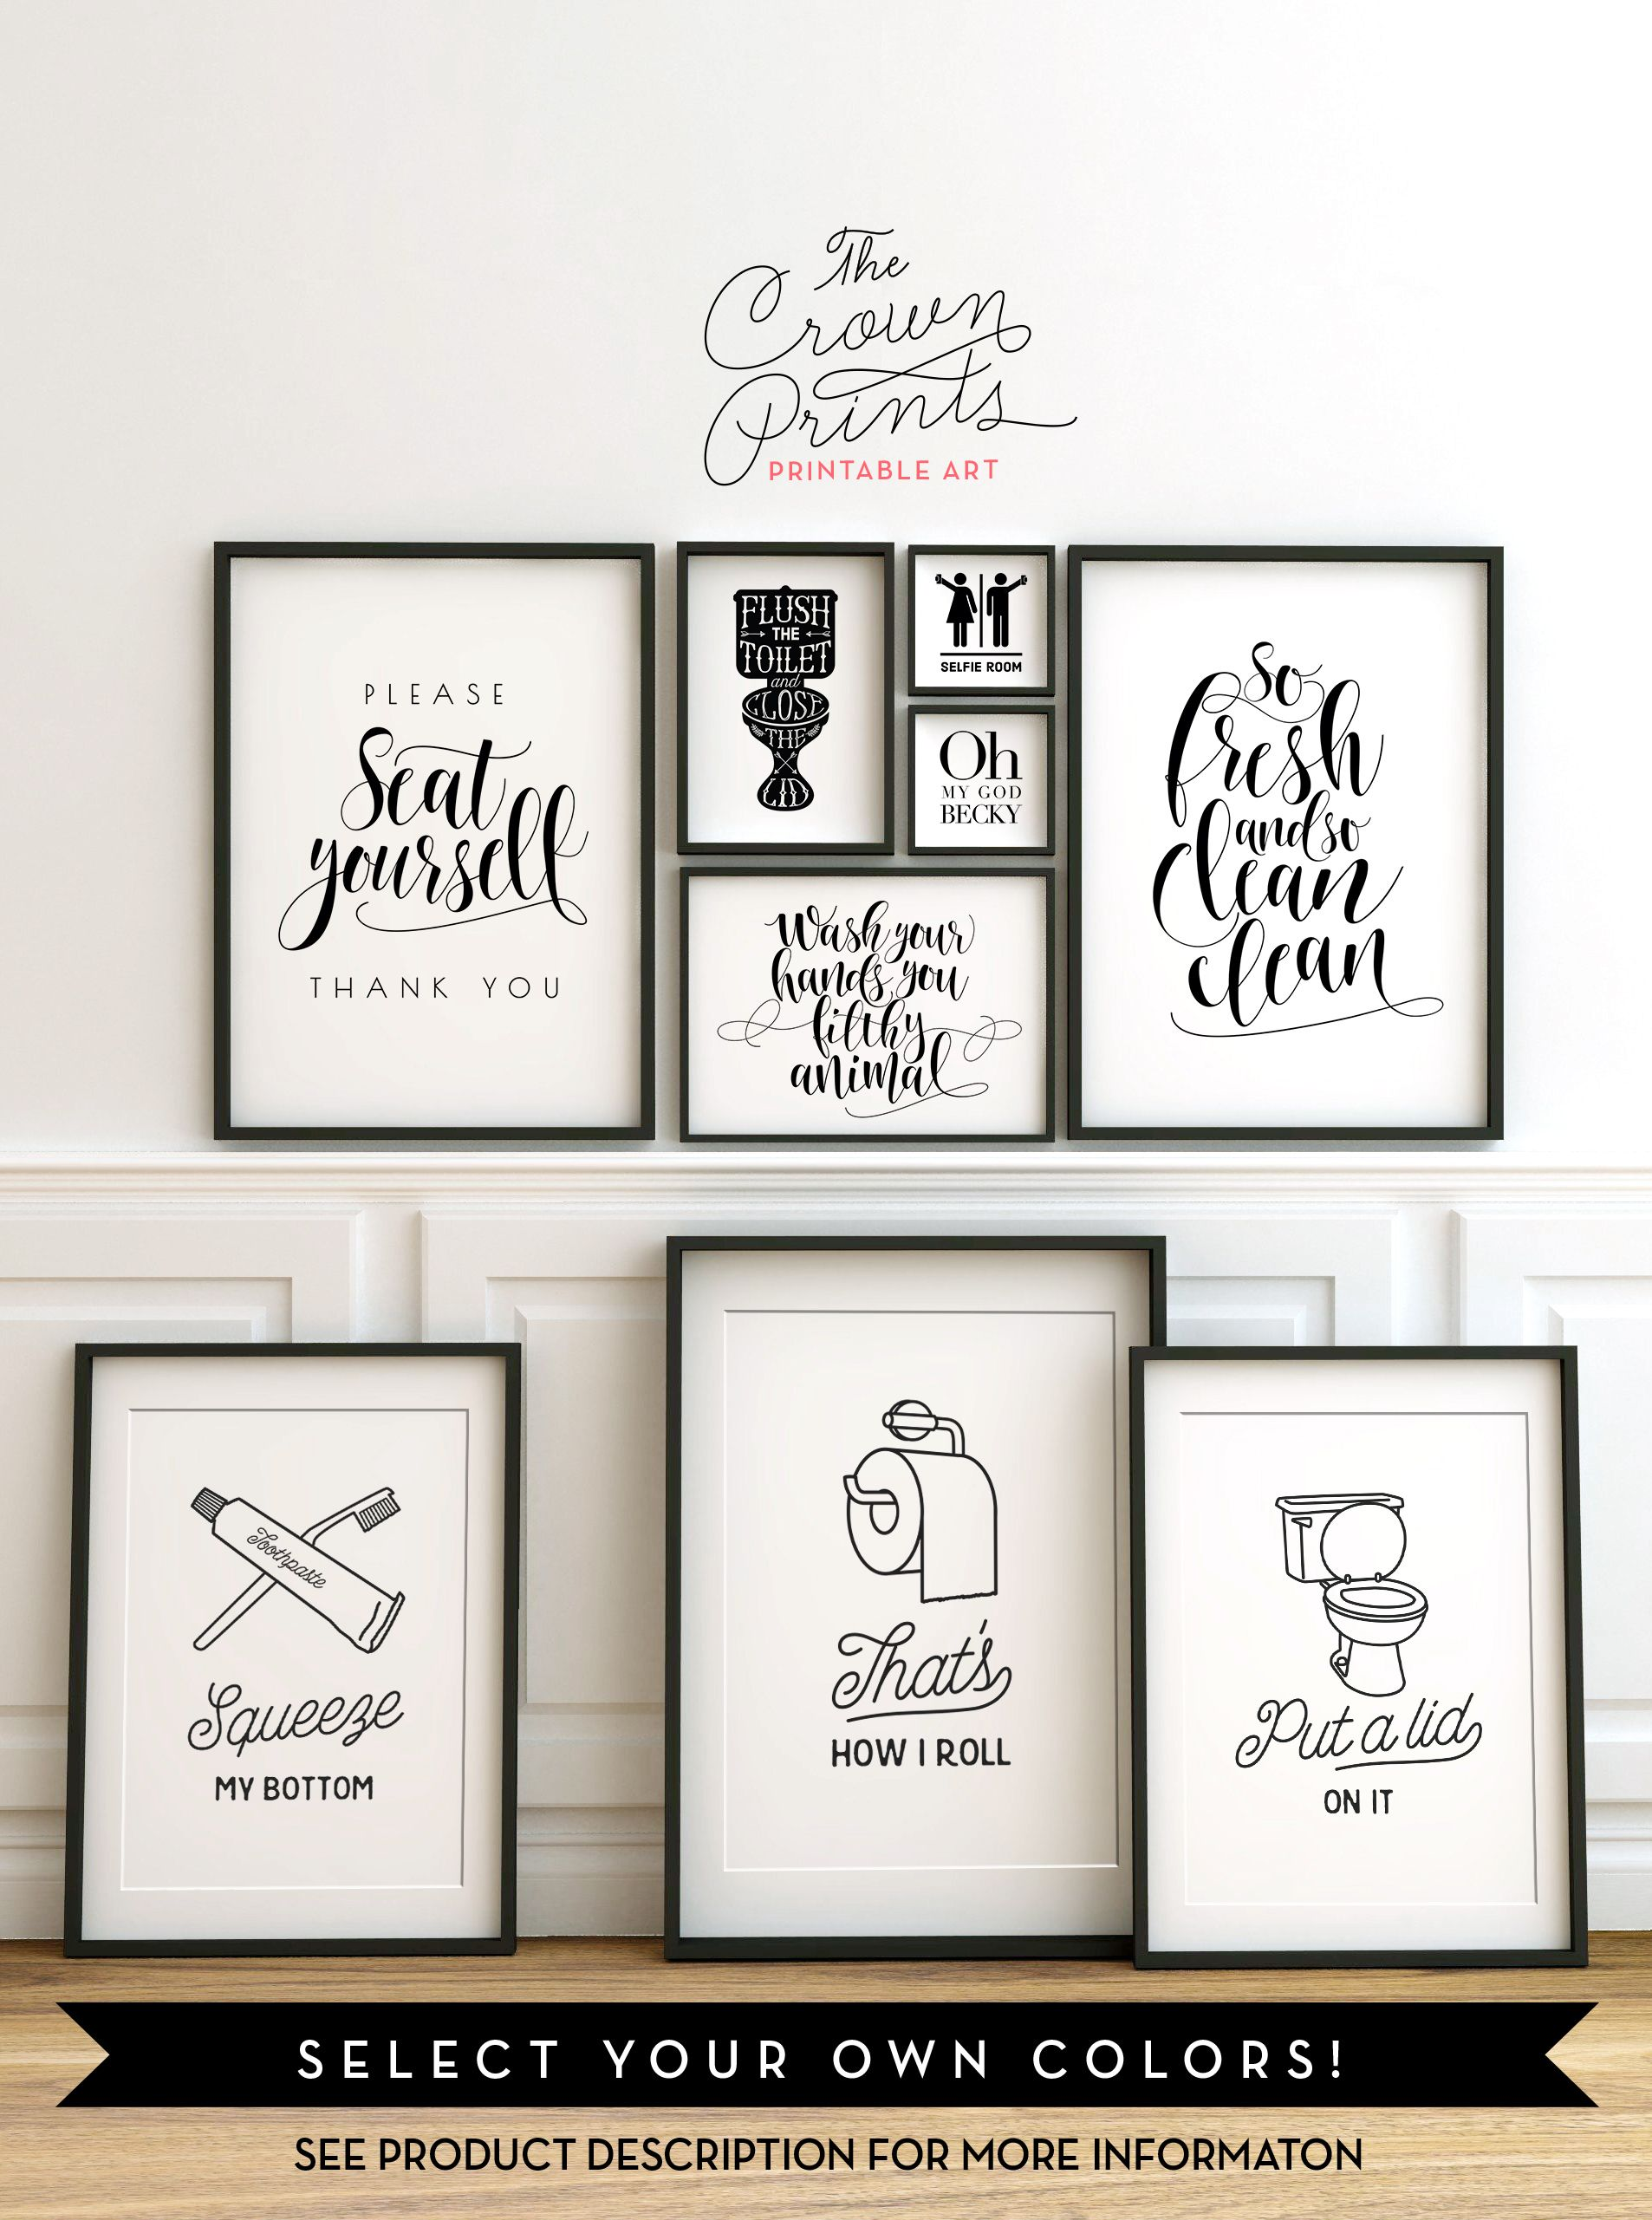 Printable Bathroom Wall Art From The Crown Prints On Etsy Lots Of Funny Quotes And Design Funny Bathroom Art Bathroom Wall Art Printables Bathroom Printables